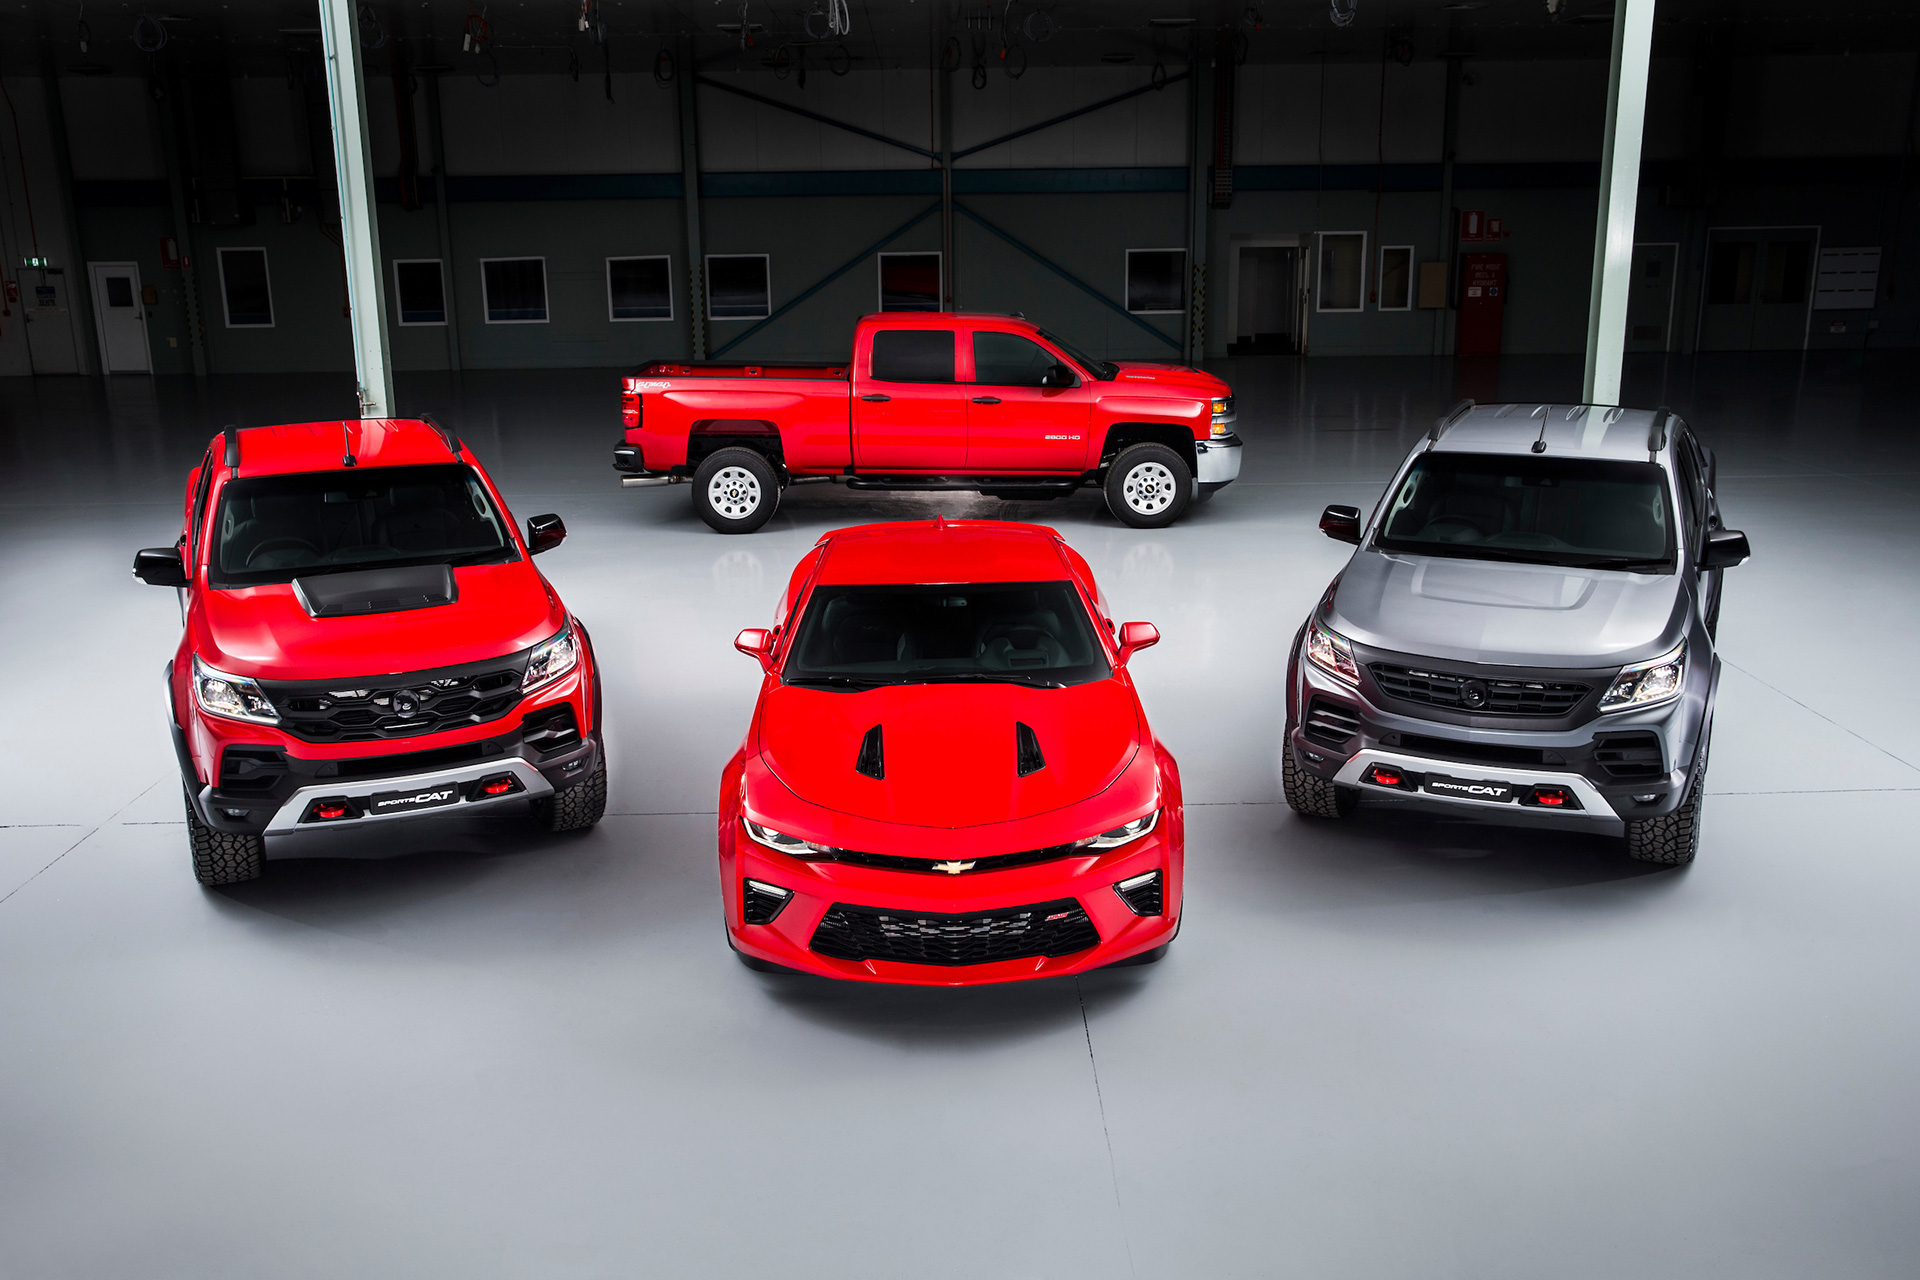 Camaro, Colorado SportsCat and Silverado set to Storm Australia.